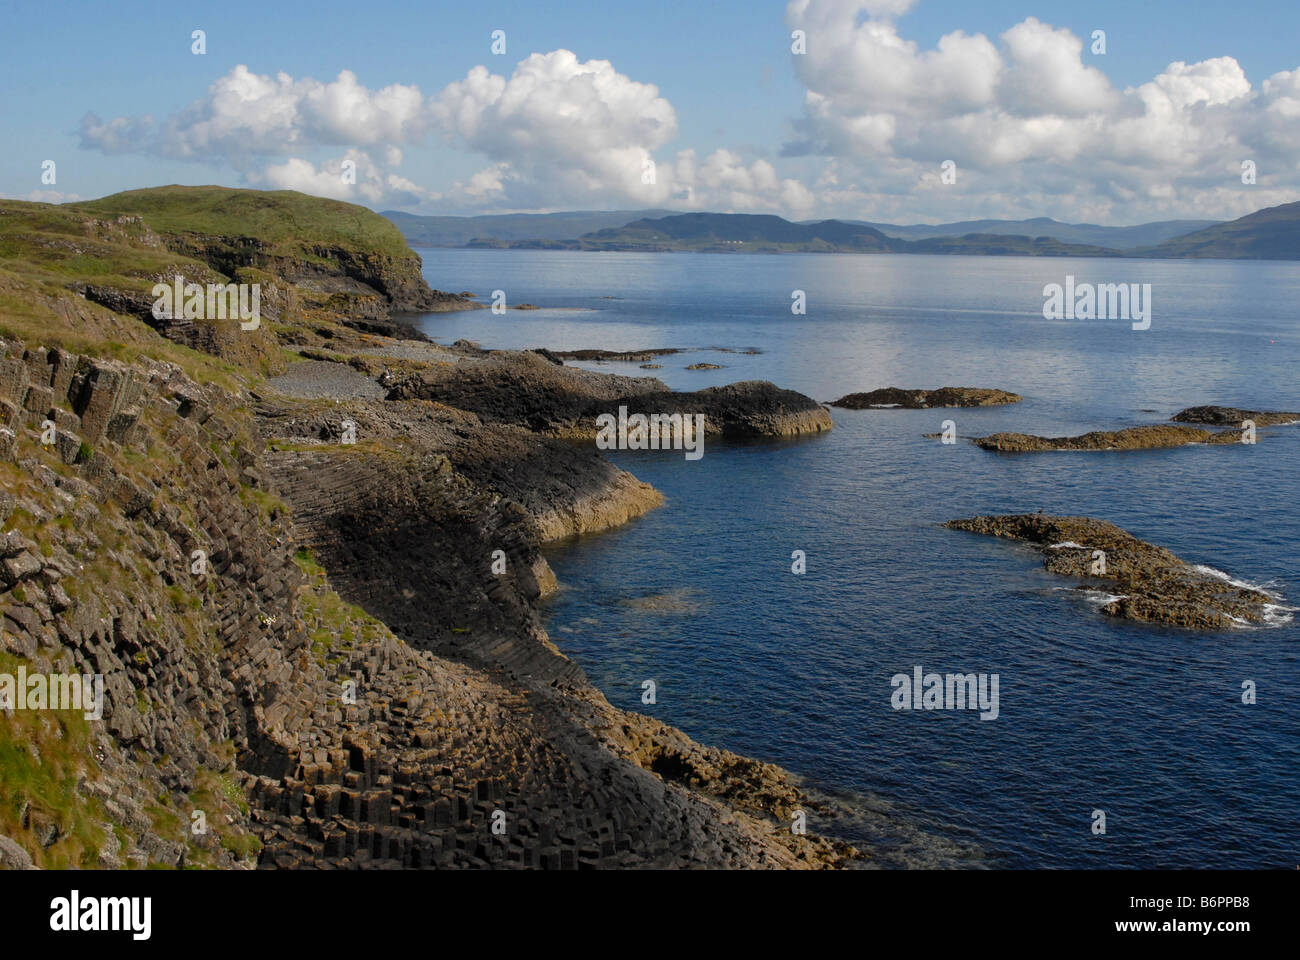 The Isle of Staffa off of the west coast of Scotland - Stock Image